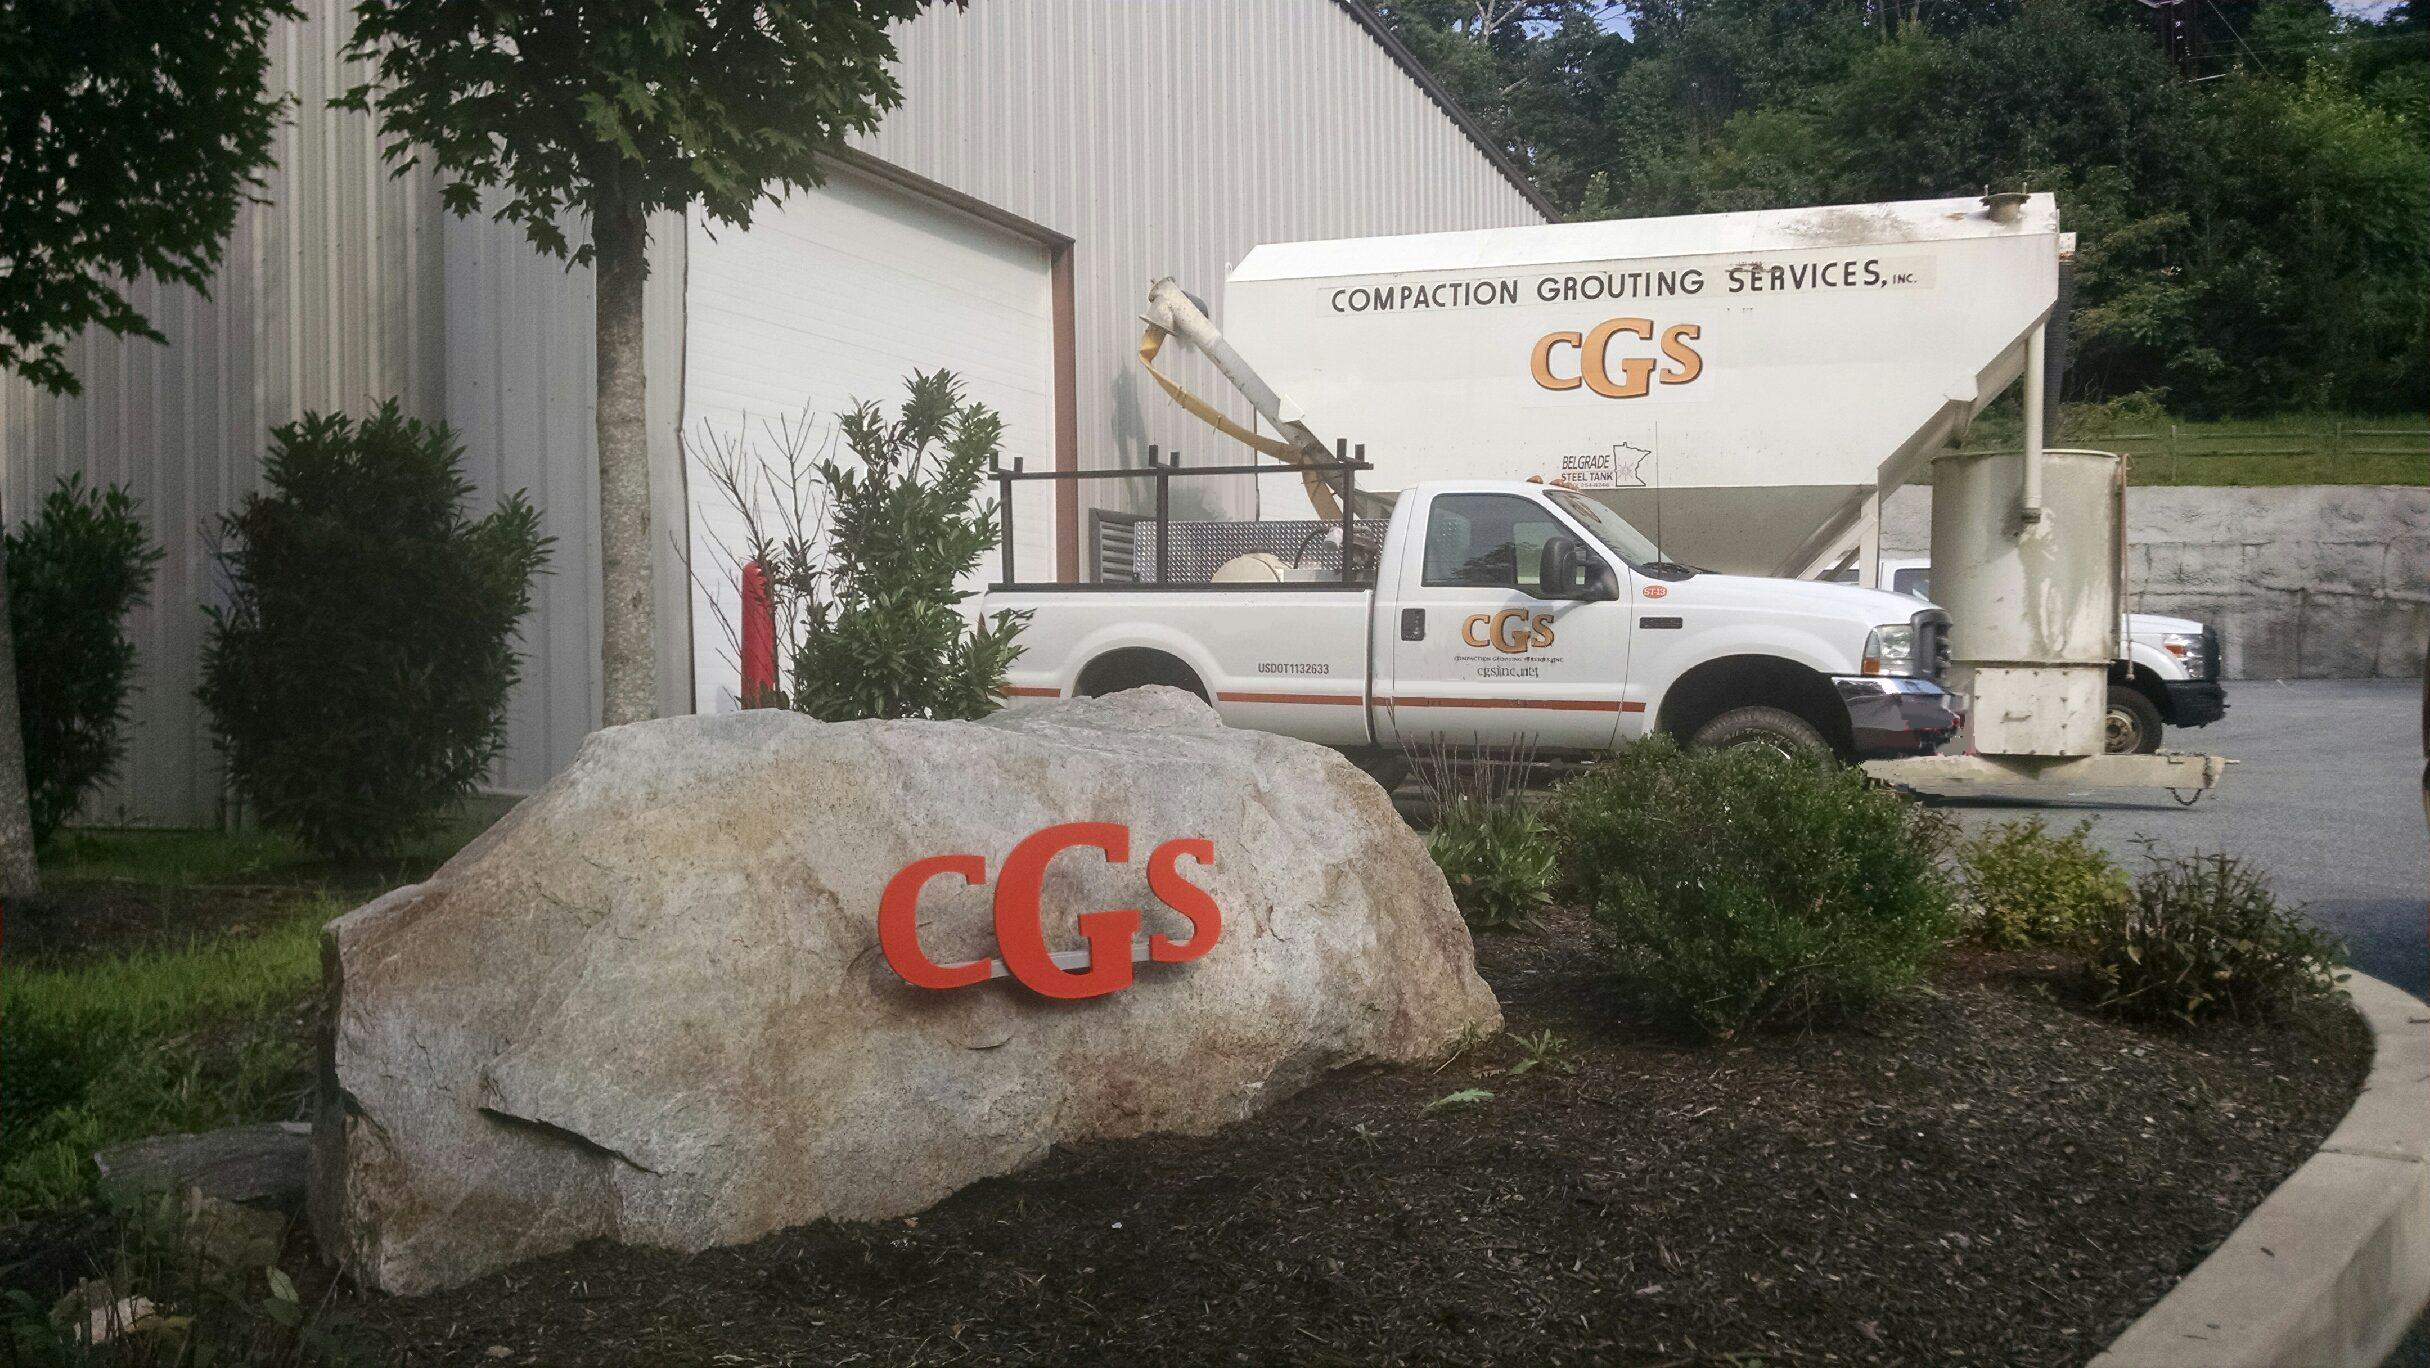 CGS Lettered Rock and 2 Vehicles